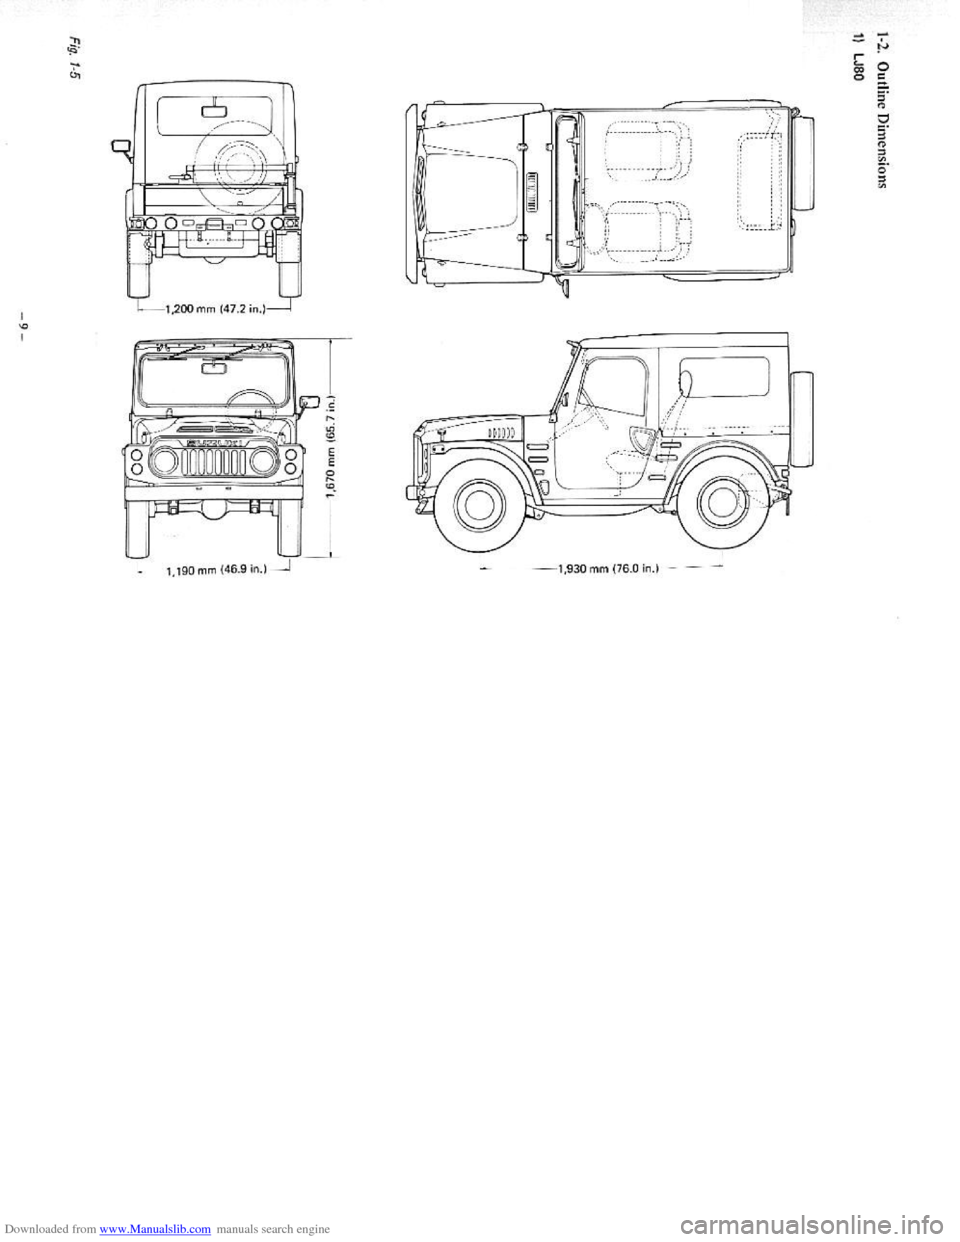 SUZUKI LJ80 1971 1.G Service Workshop Manual (295 Pages)